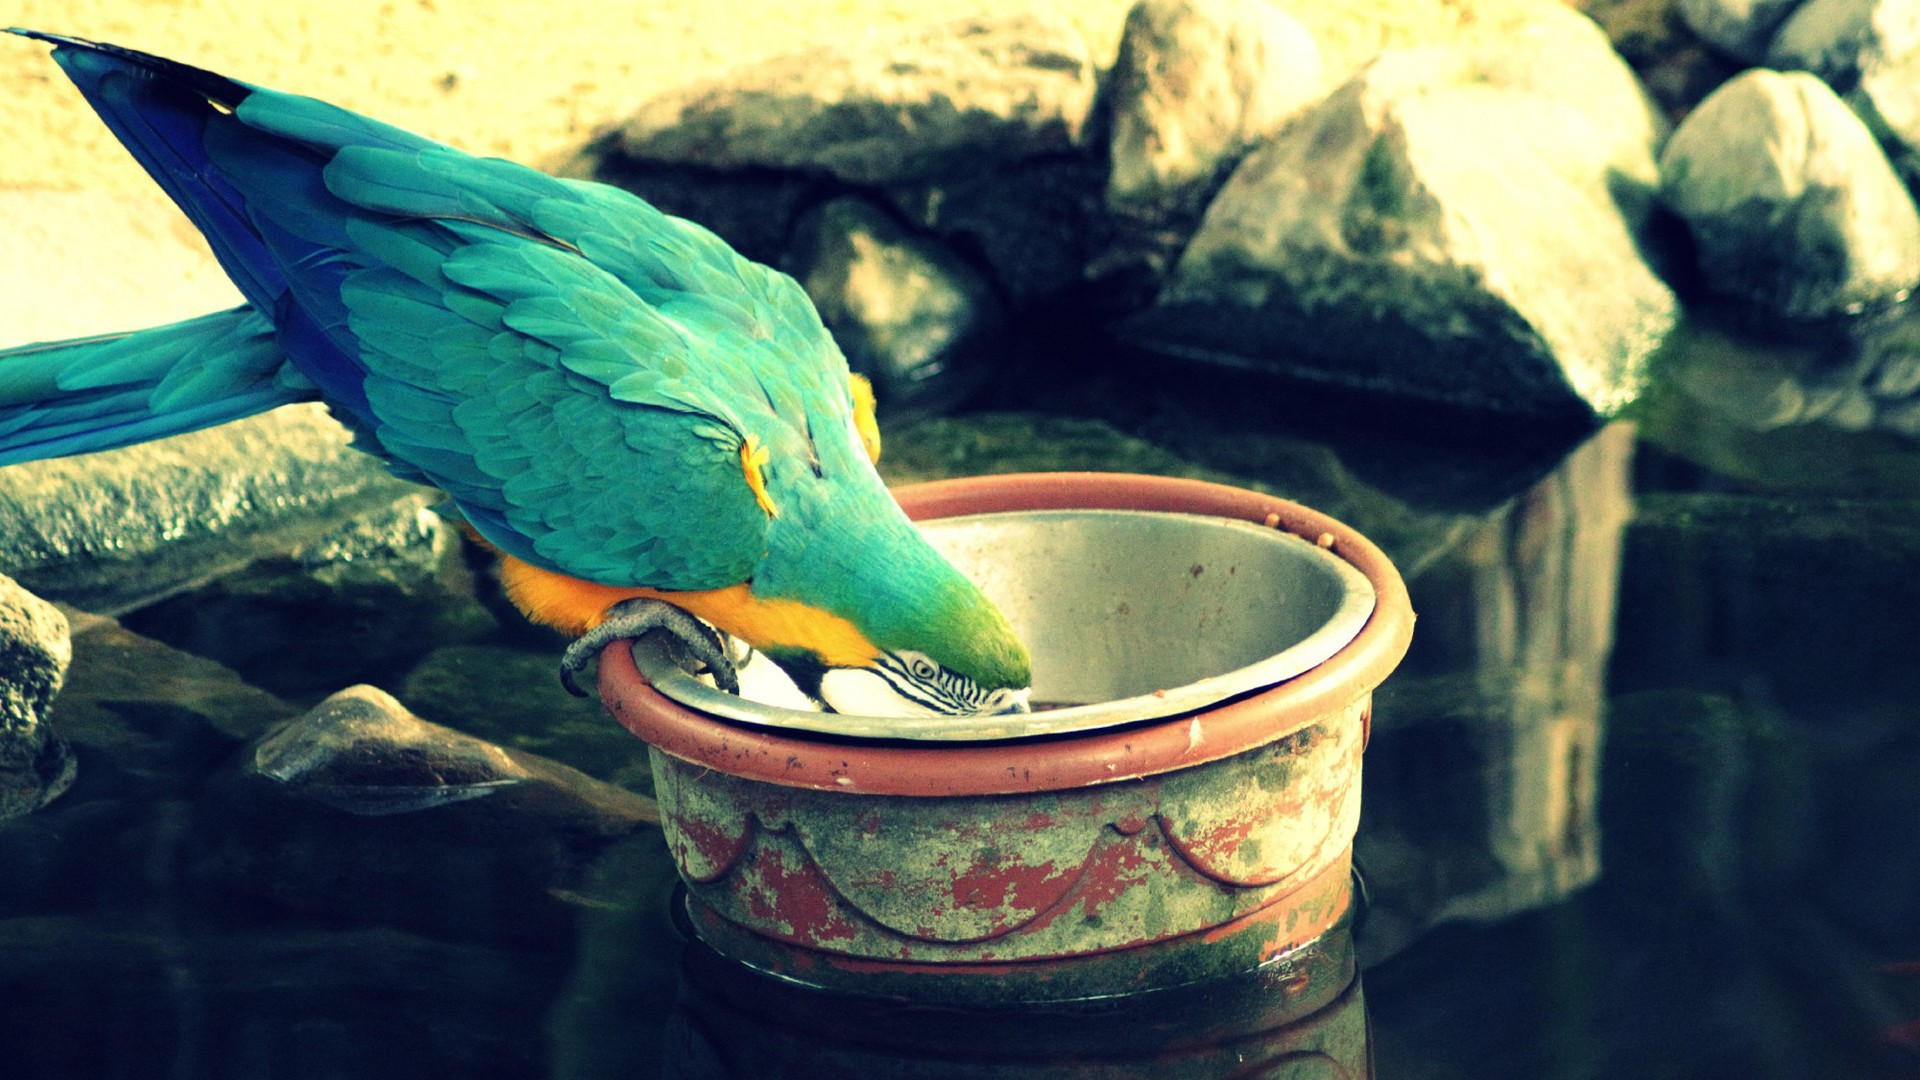 wallpaper.wiki-New-birds-parrots-1920x1080-wallpapers-PIC-WPE0013053